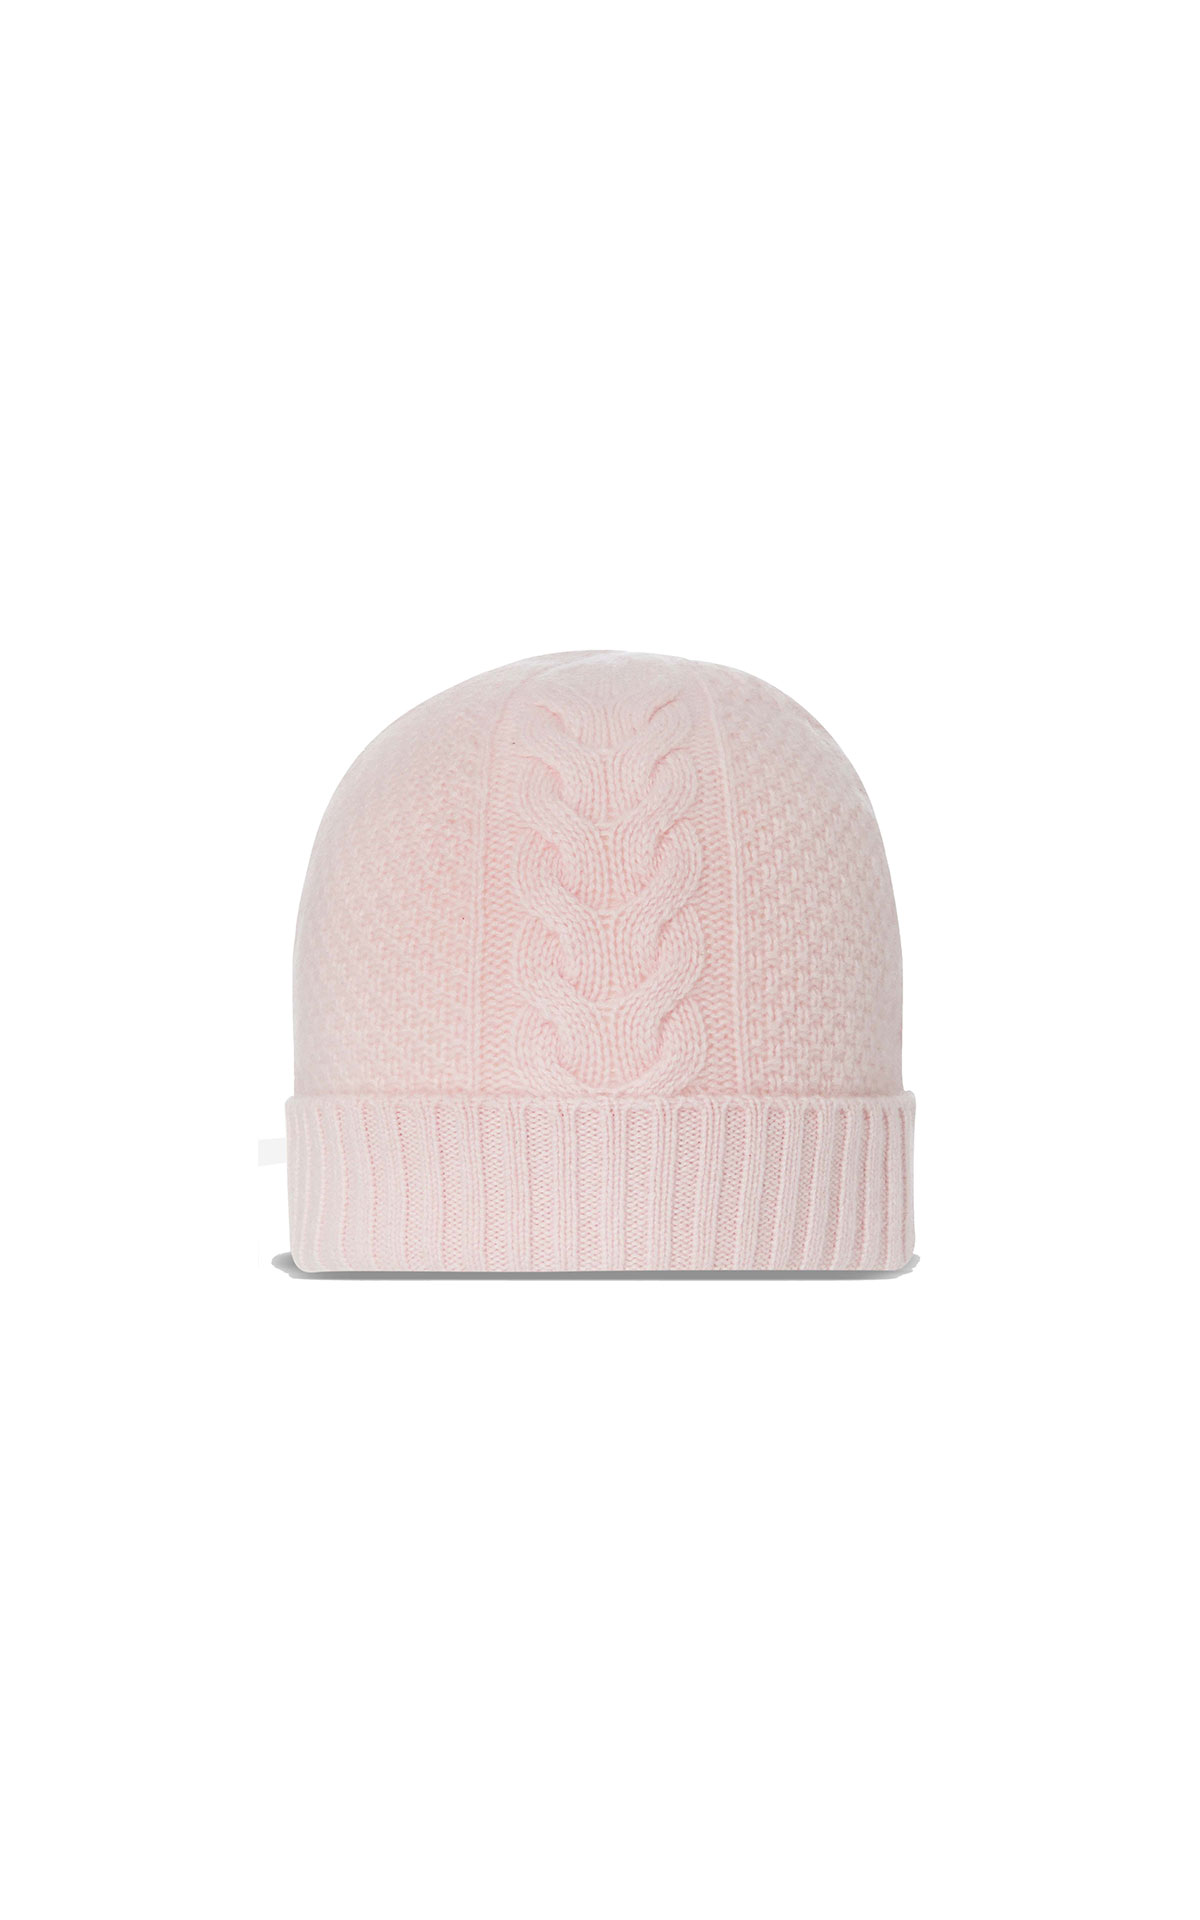 N.Peal Cable hat from Bicester Village